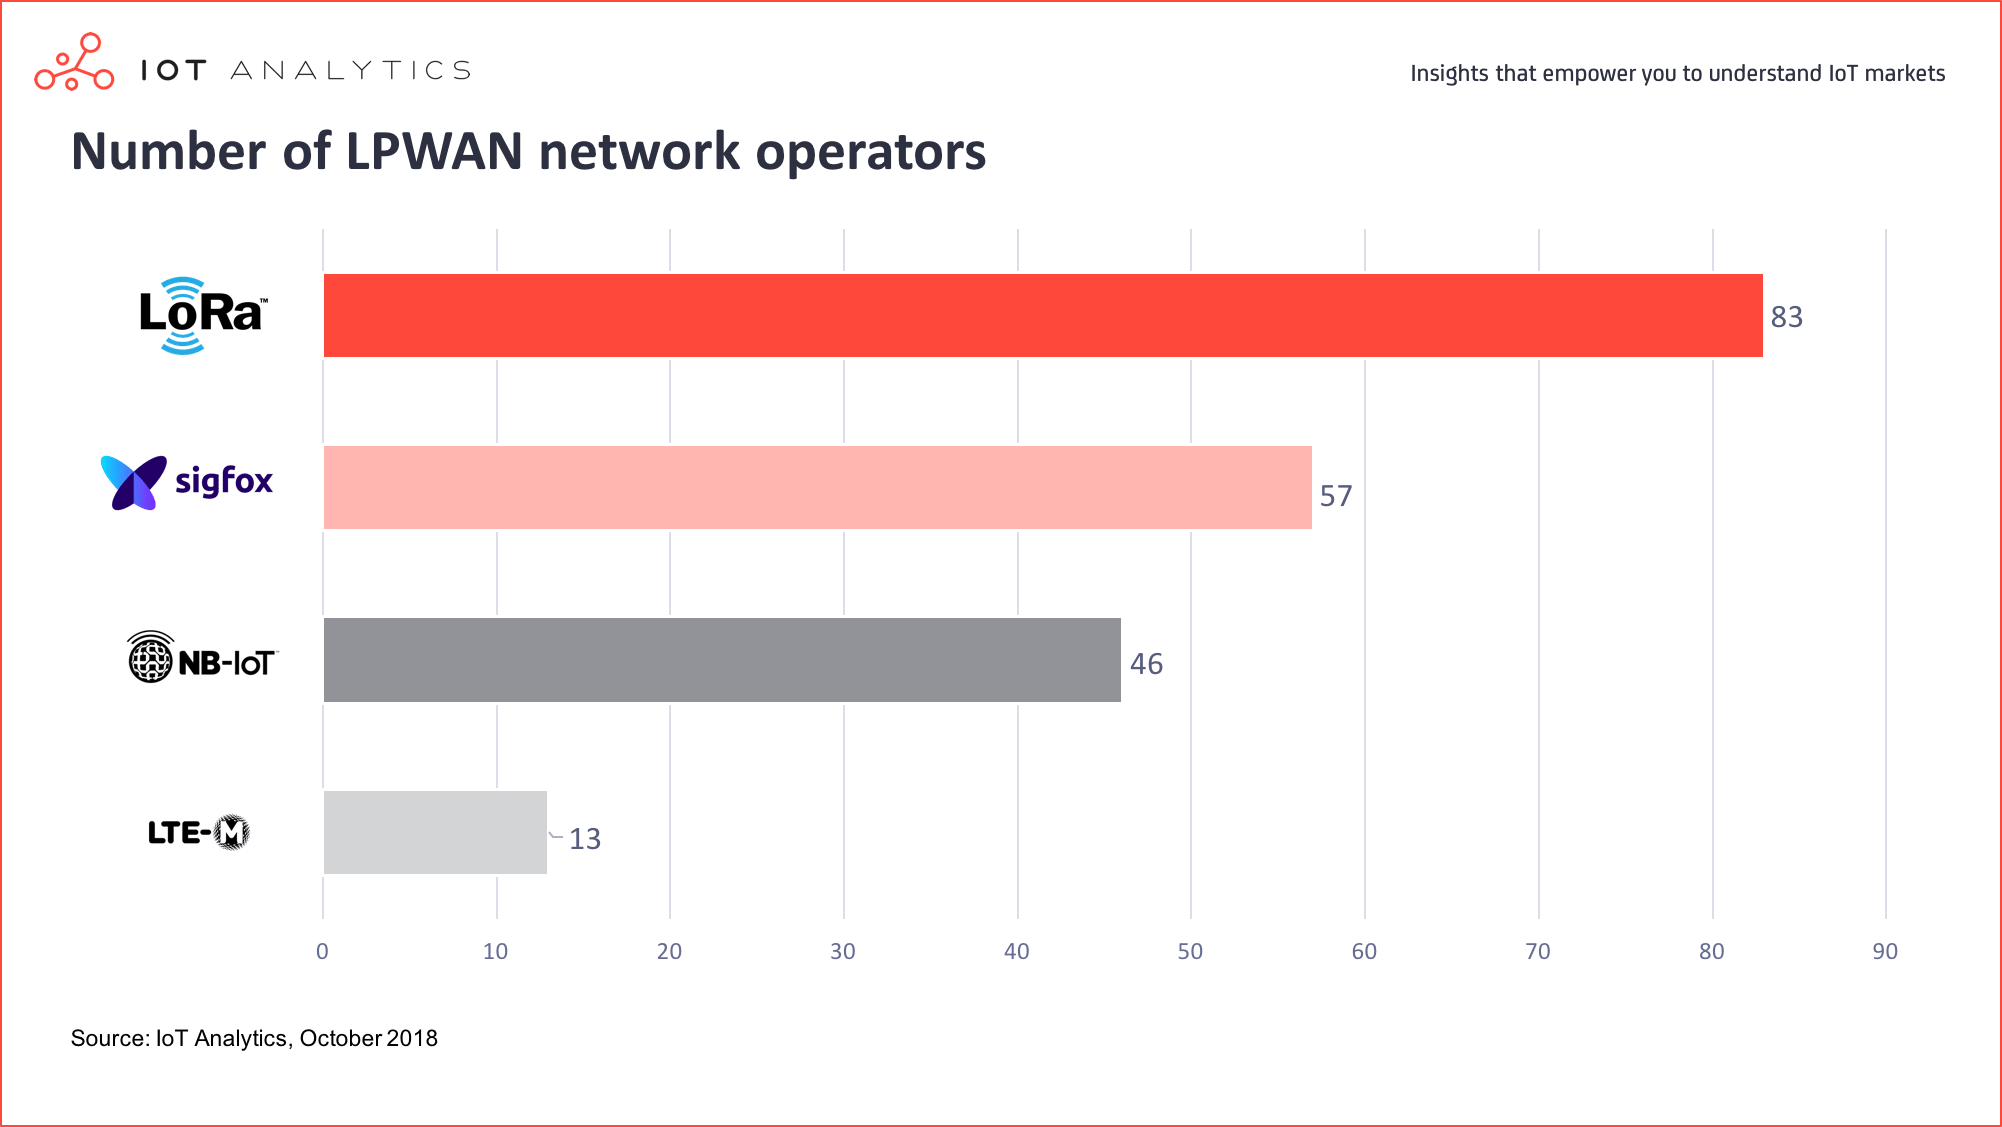 Number of LPWAN network operators